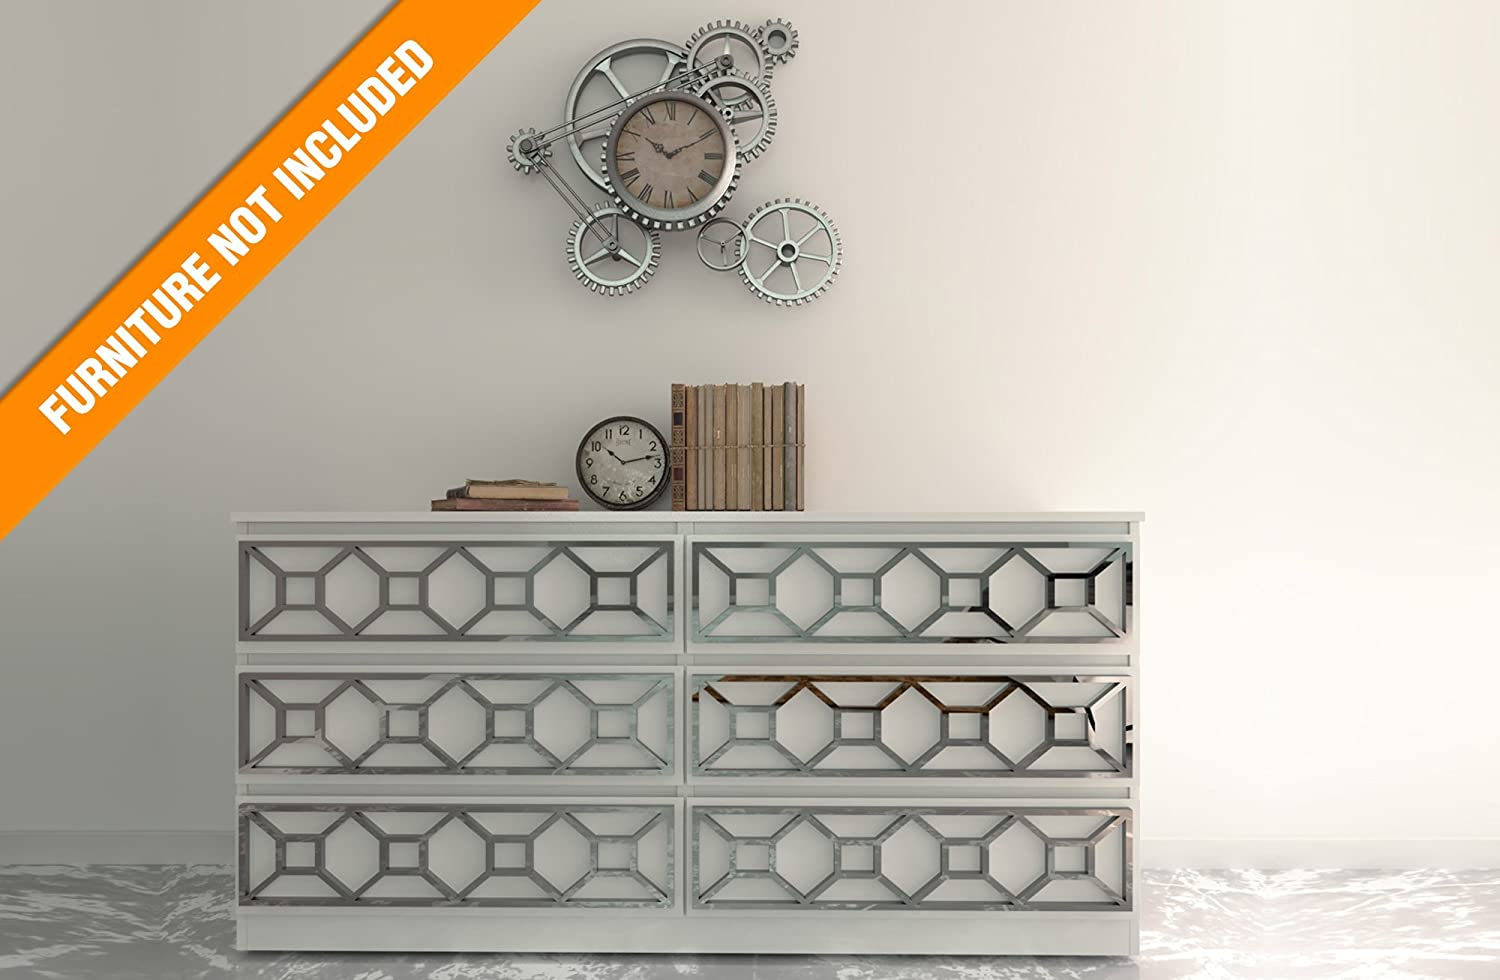 HomeArtDecor | Coimbra Overlay | Suitable for IKEA Malm | High Quality Overlay | Color: PVC White/Paintable, Golden Mirror, Silver Mirror, Brushed Silver | 3D Panels | Overlays| Refurbish